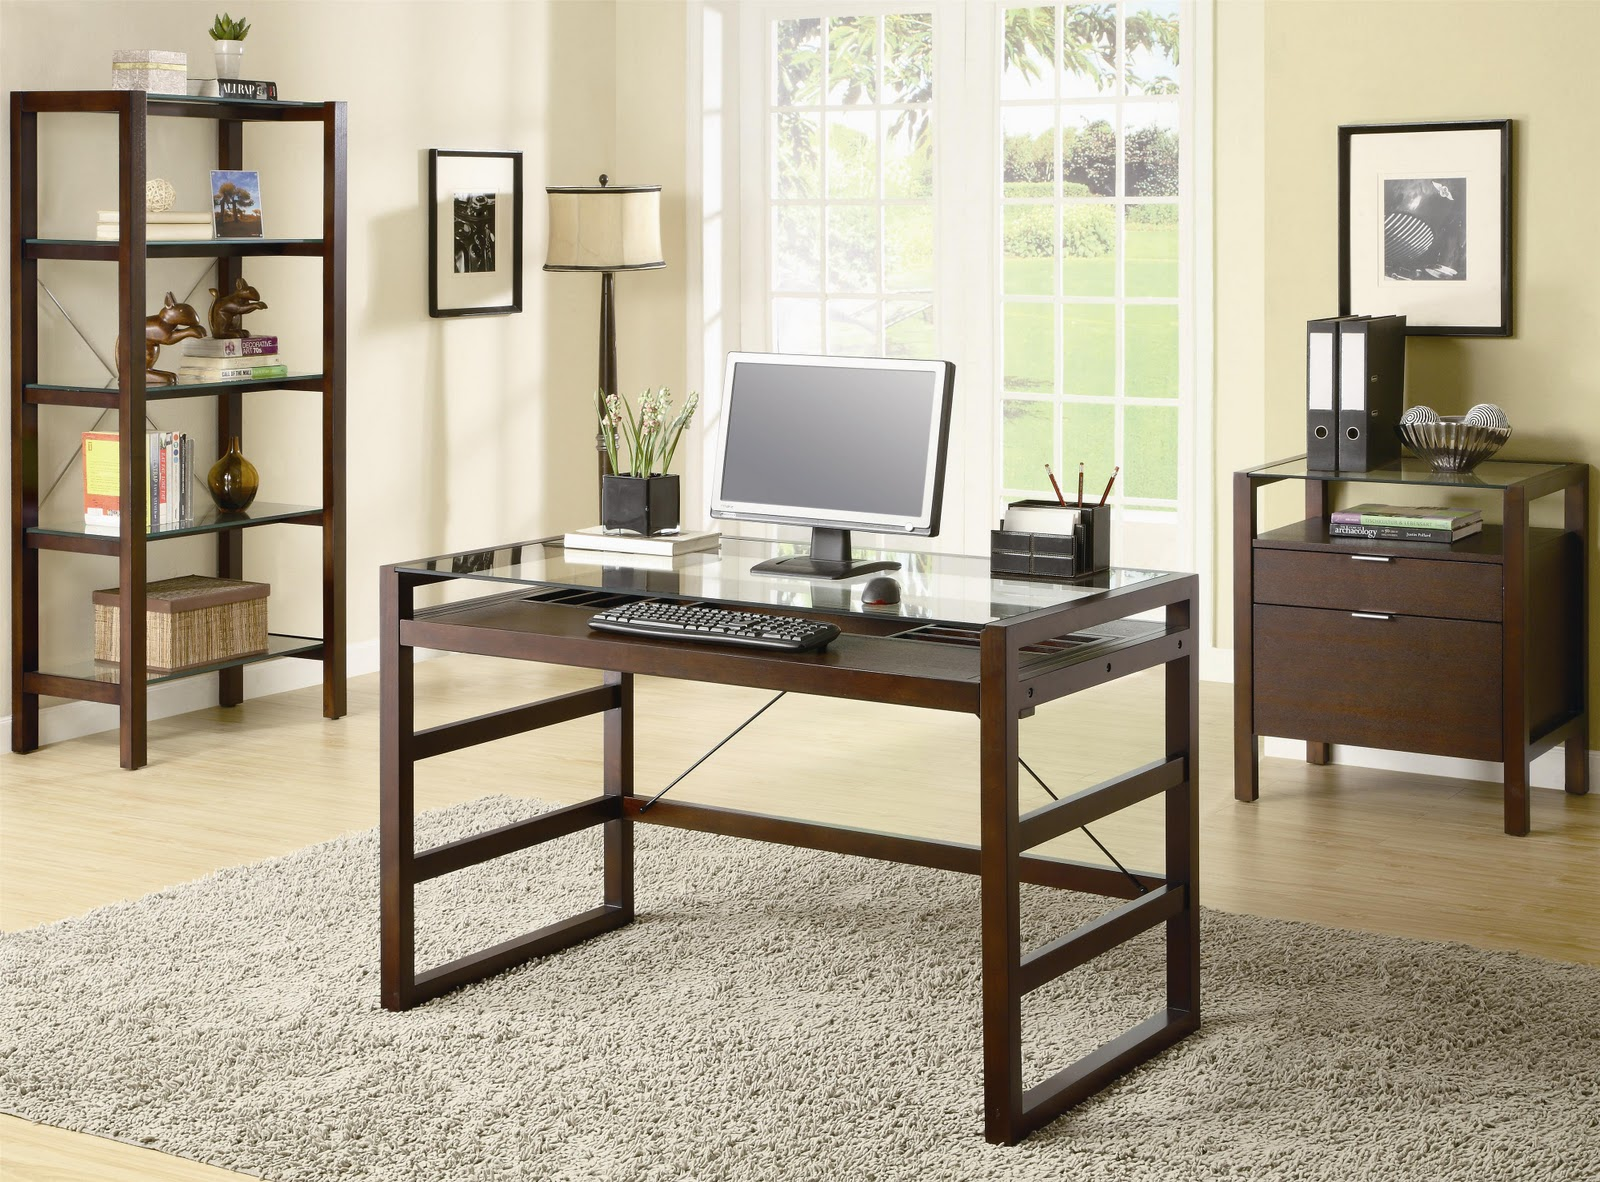 Home Office | Royal Furniture Outlet